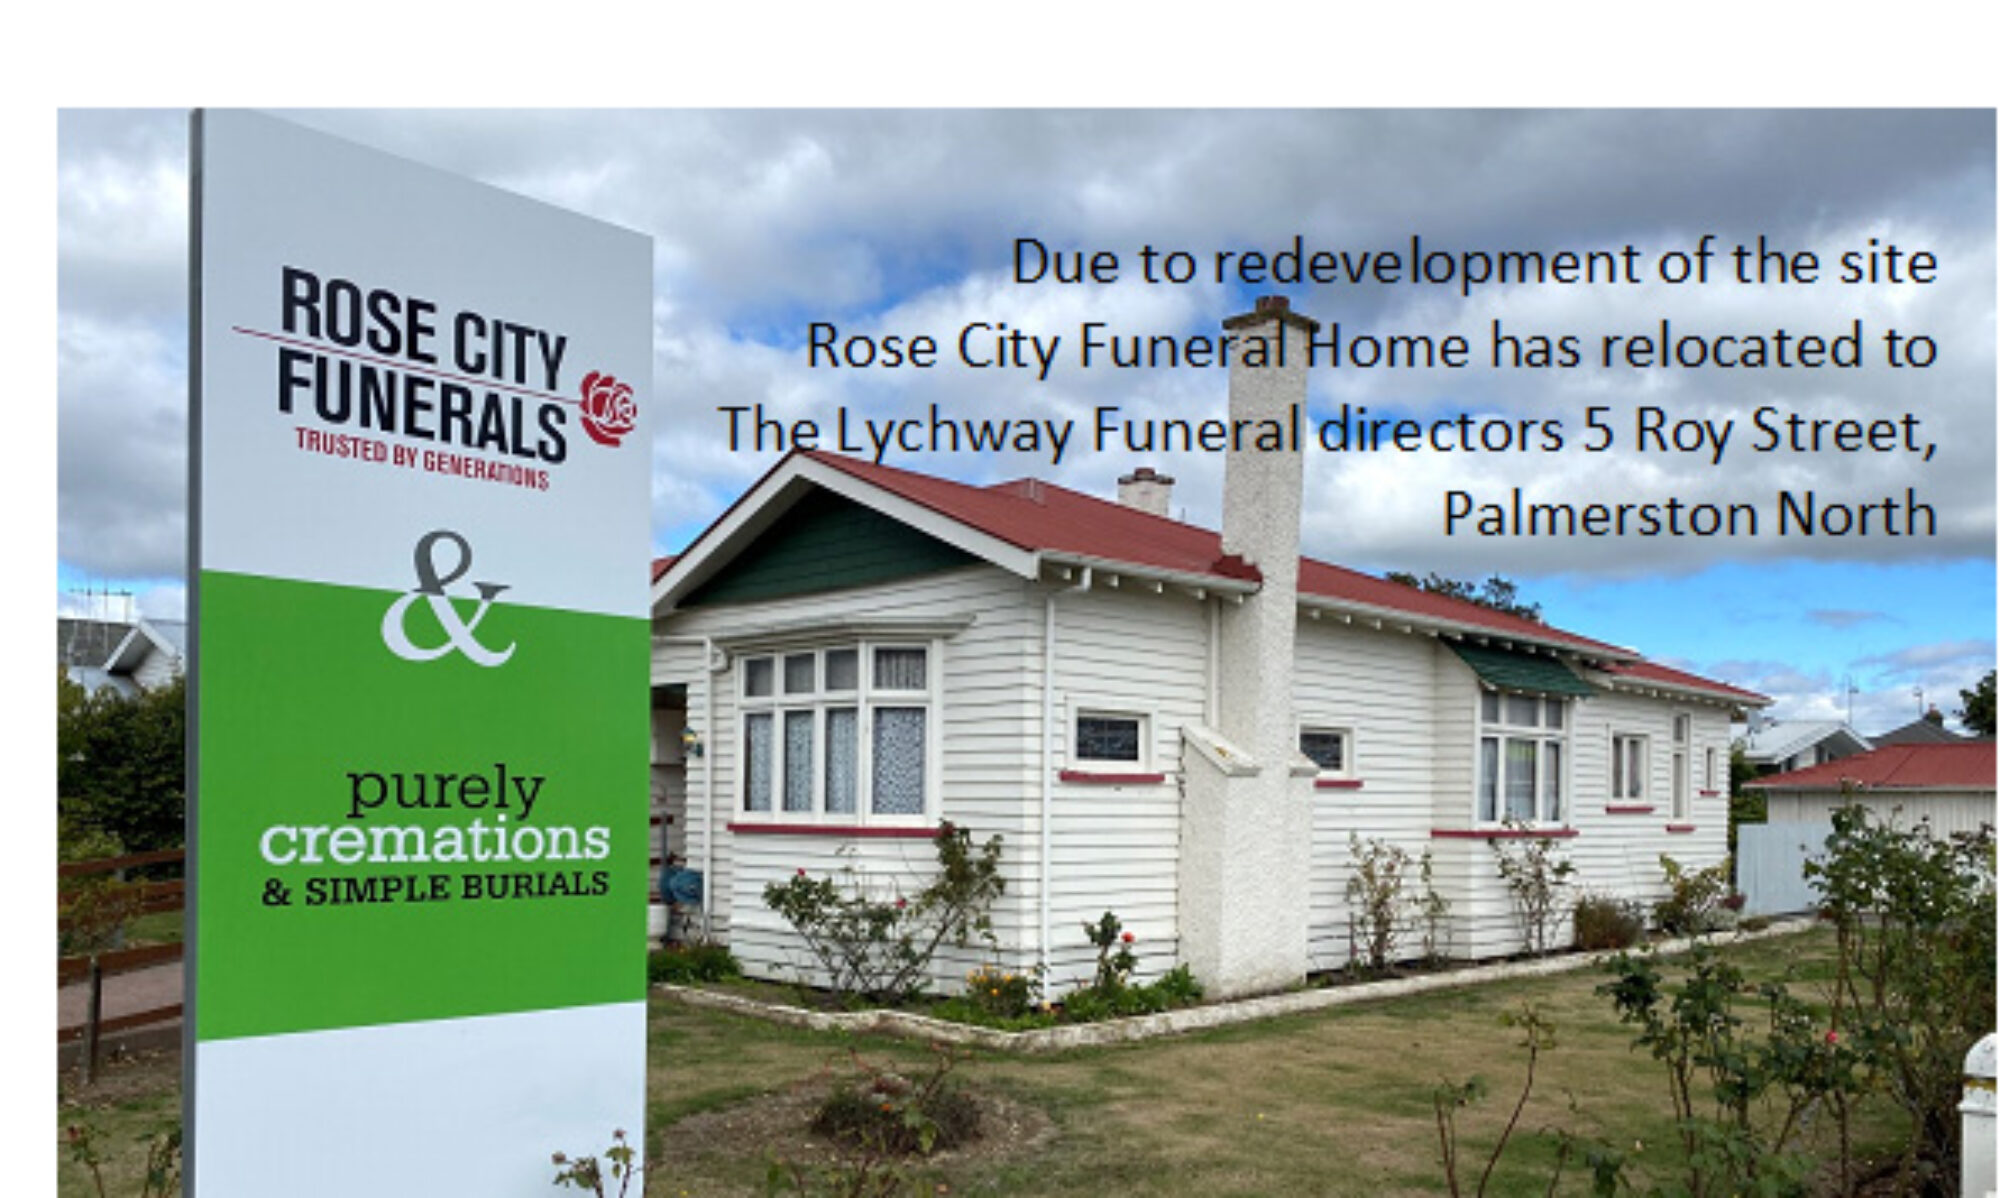 Rose City Funeral Home